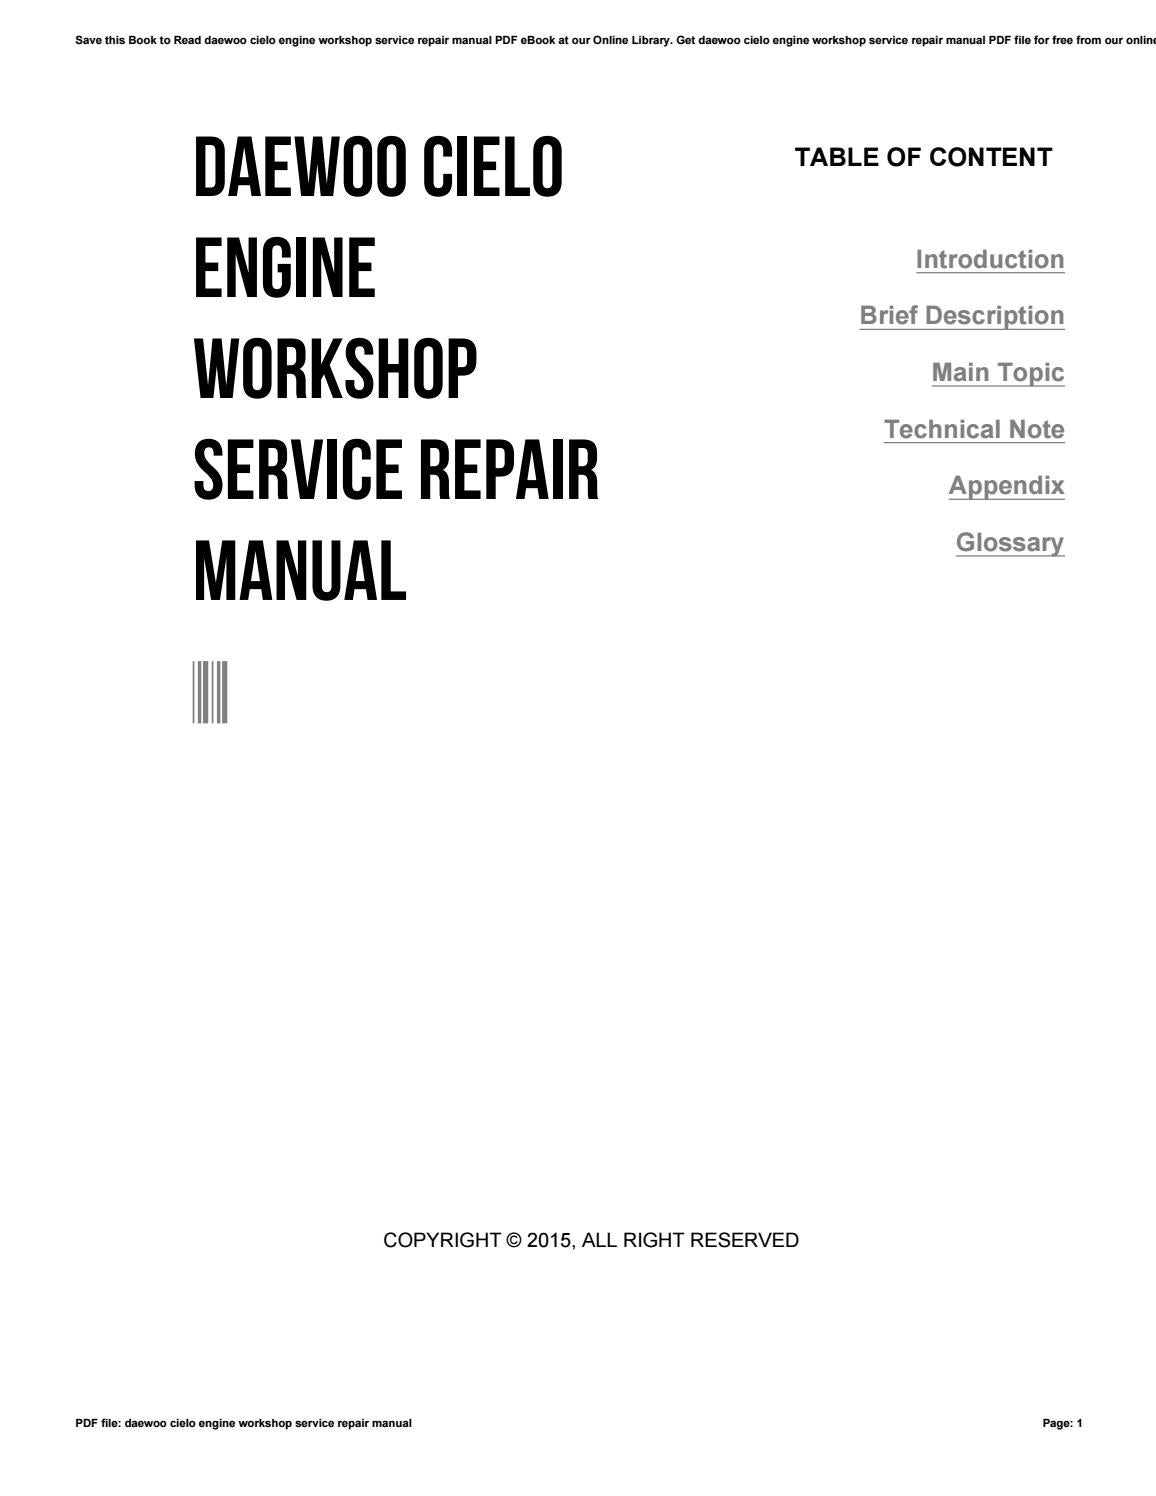 Daewoo Cielo Workshop Manual Free Download Wiring Library 1997 Engine Service Repair By Preseven92 Issuu